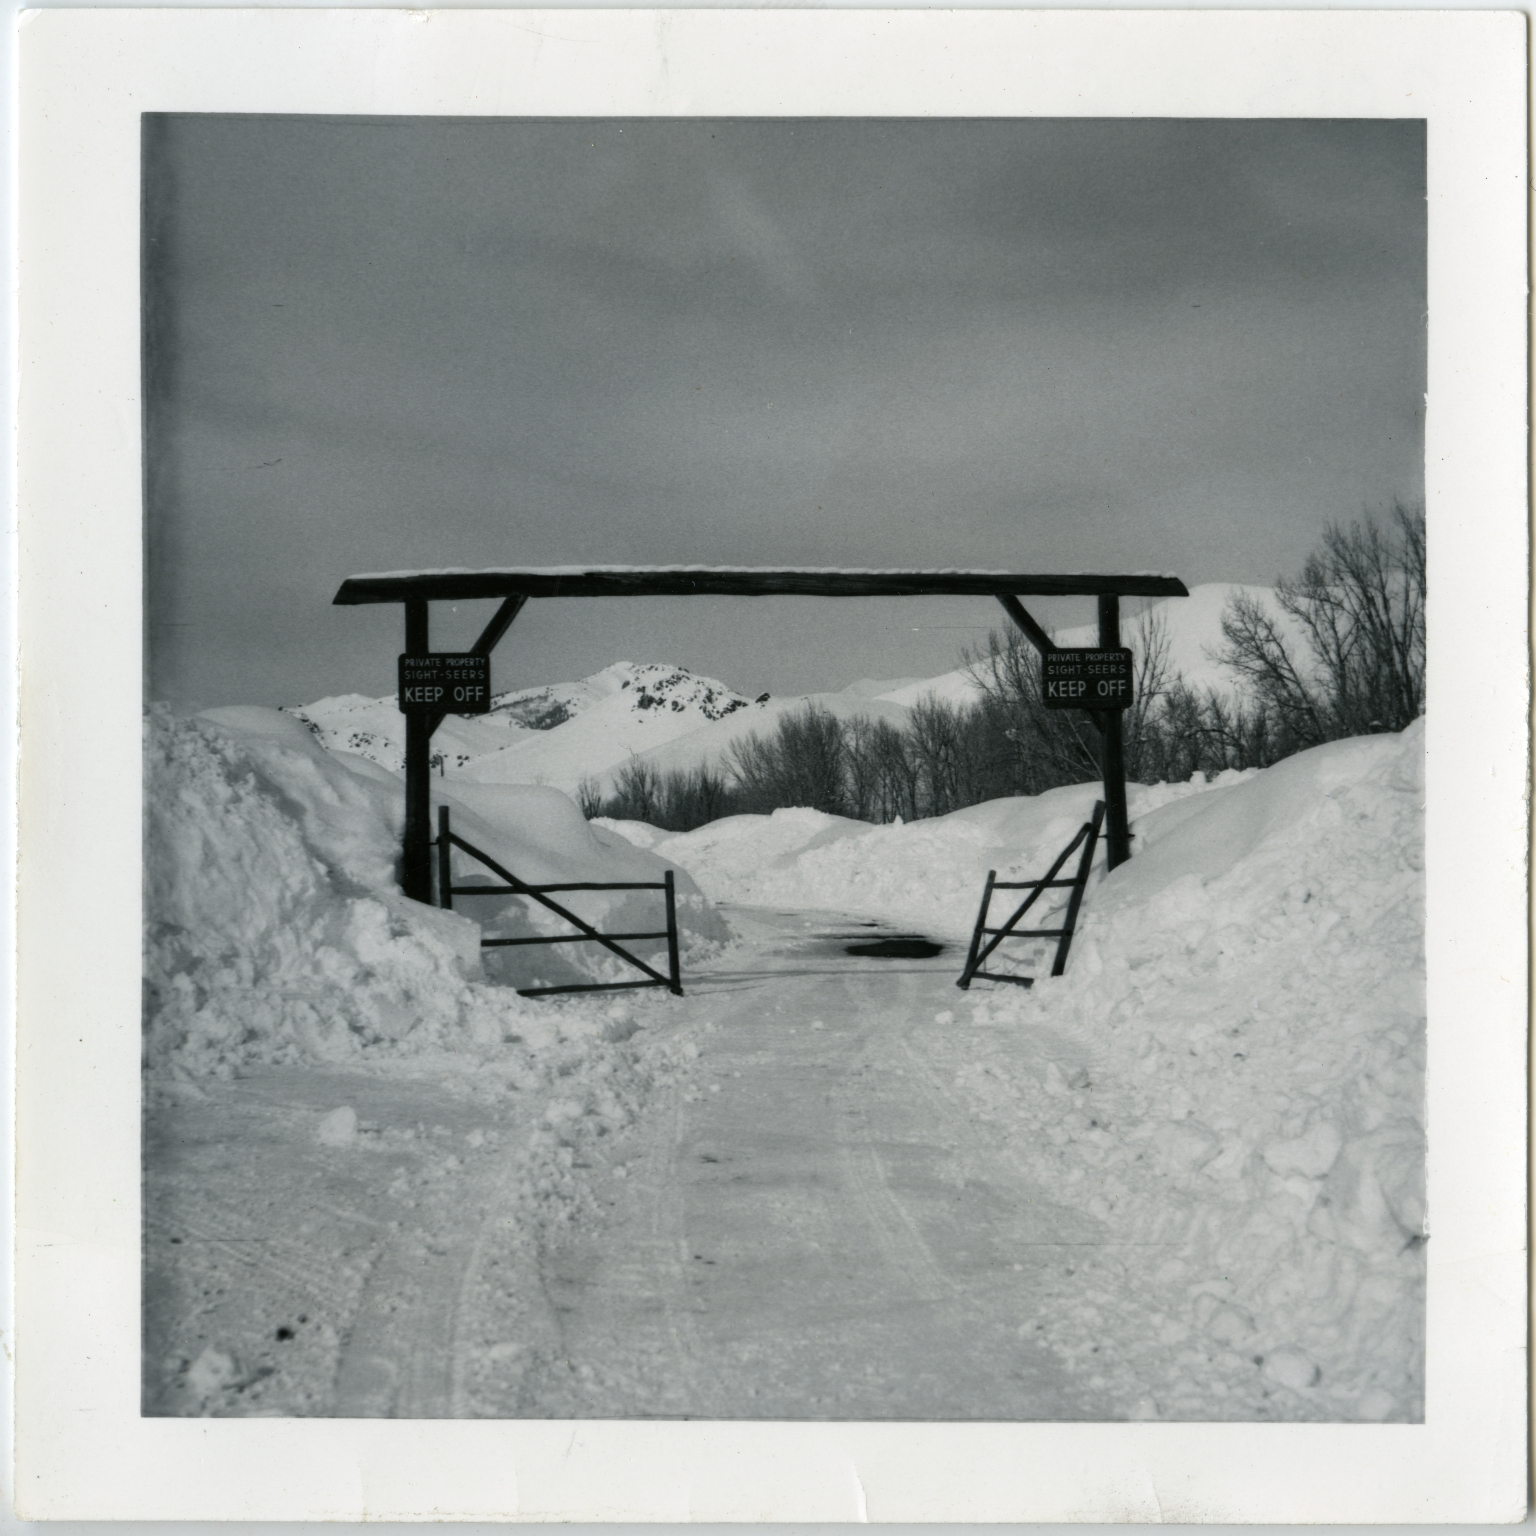 Gate in Winter in Ketchum